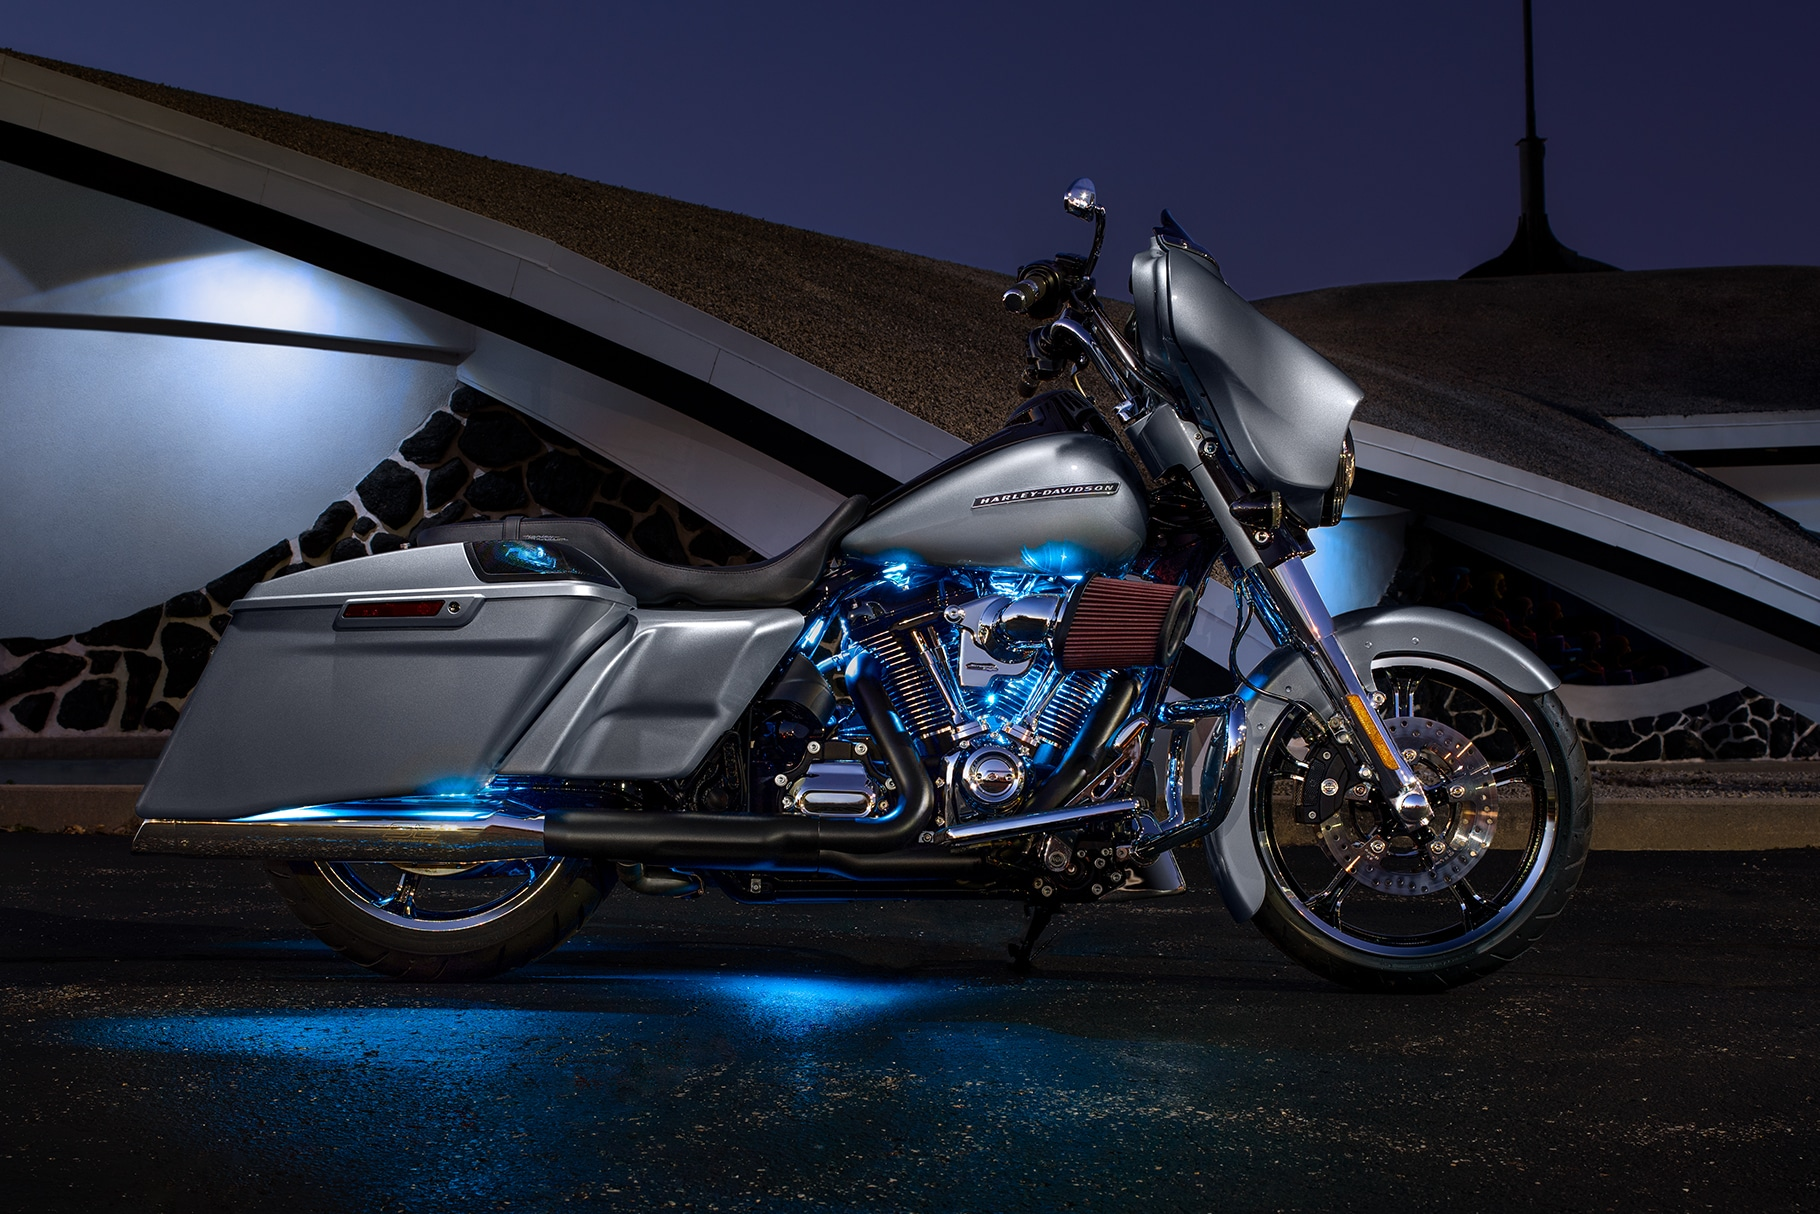 Parked 2019 Custom Silver Street Glide Special motorcycle